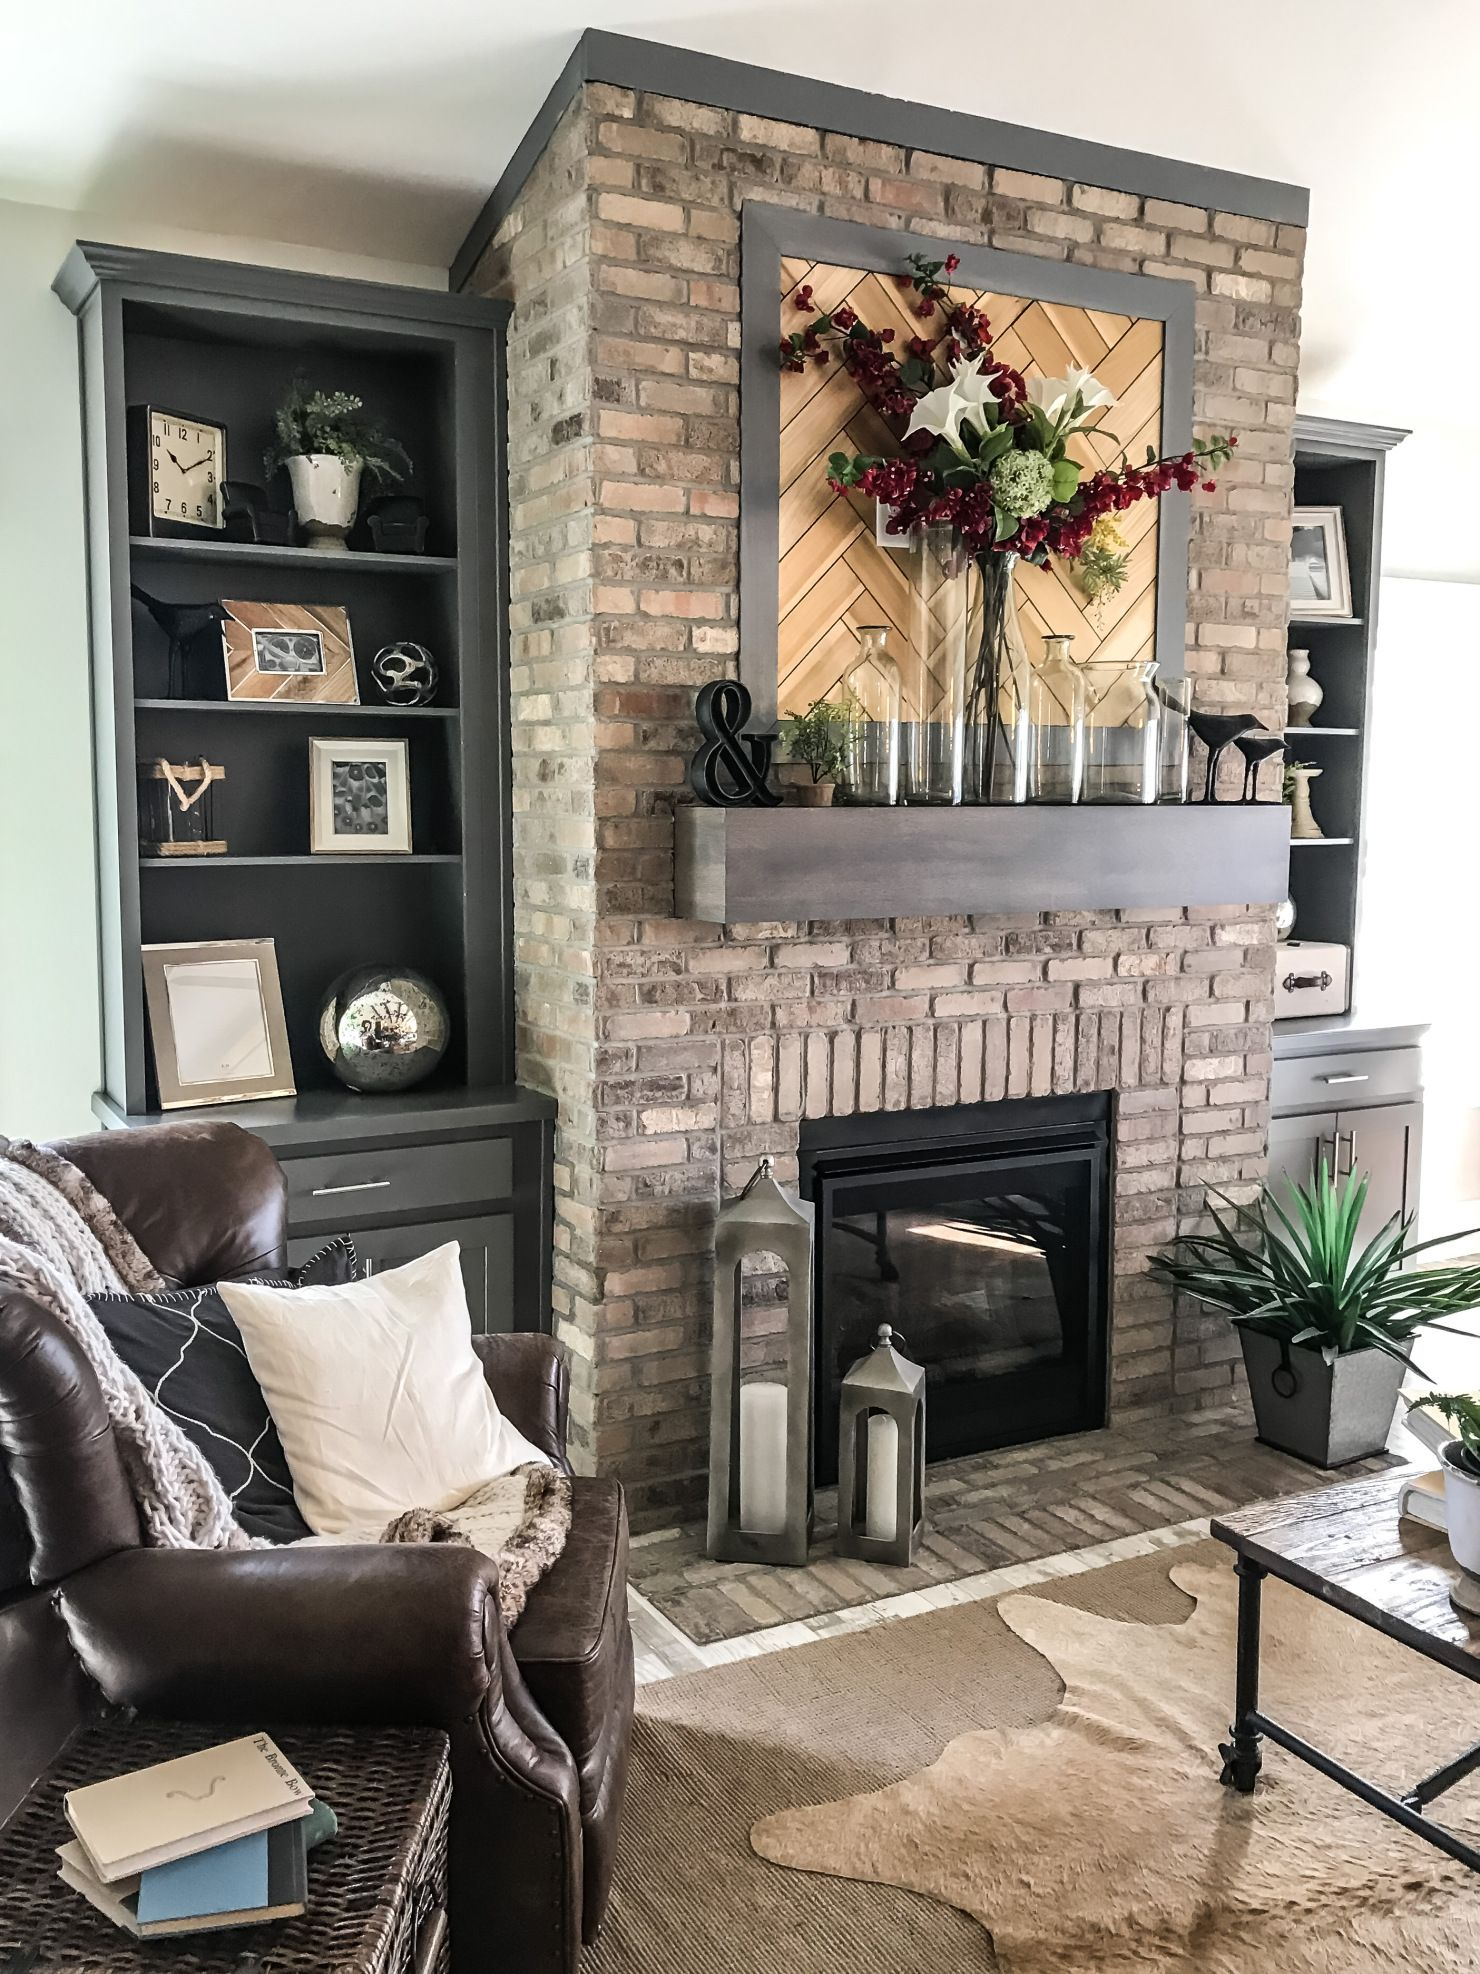 A Warm And Cozy Living Room Featuring An Updated Traditional Brick